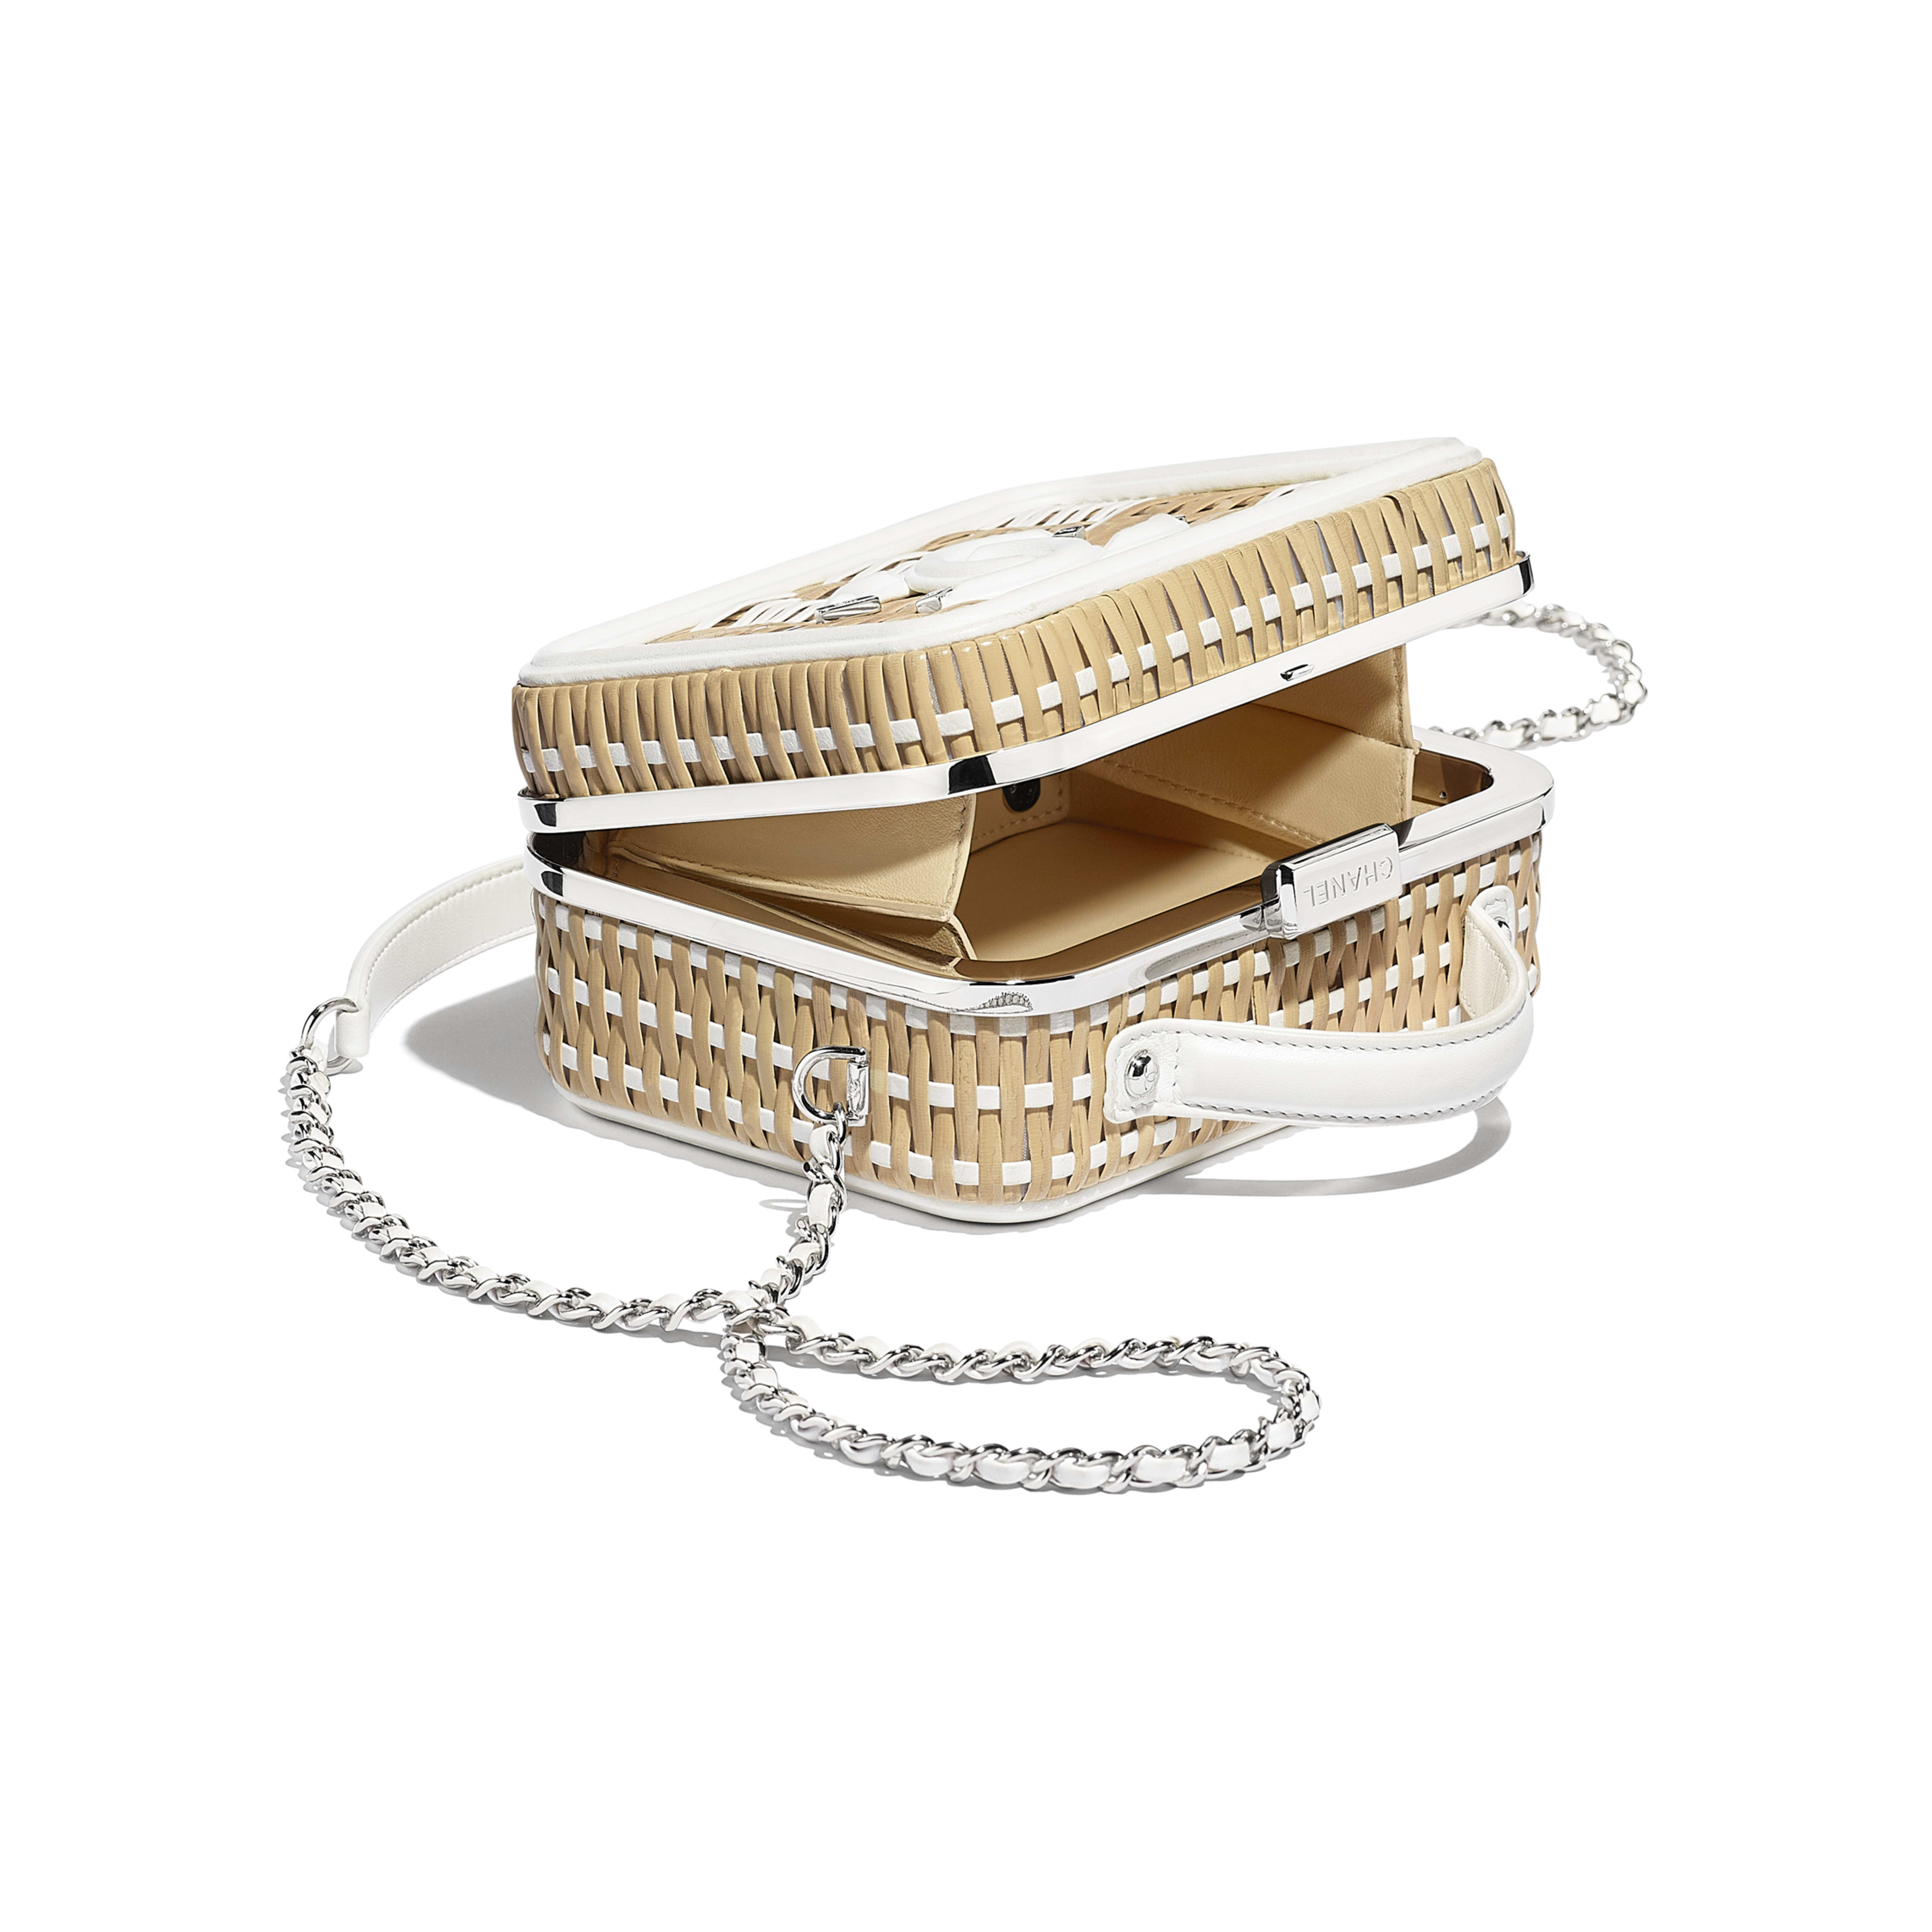 Small Vanity Case - Beige & White - Rattan, Calfskin & Silver-Tone Metal - Other view - see full sized version